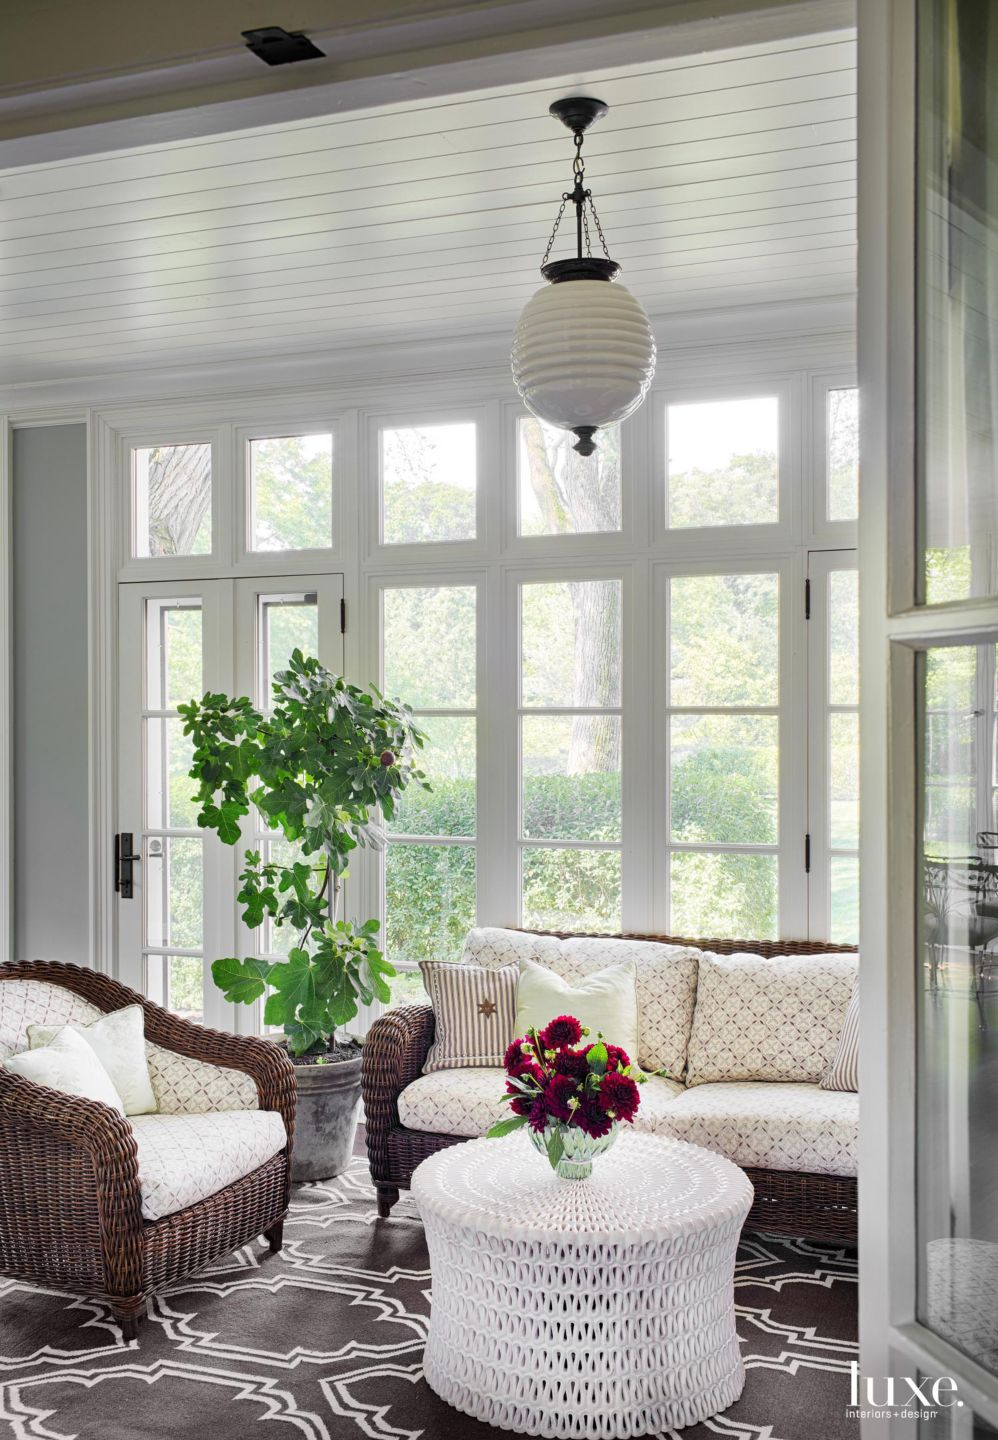 Traditional White Porch with Wicker Sofa and Chair